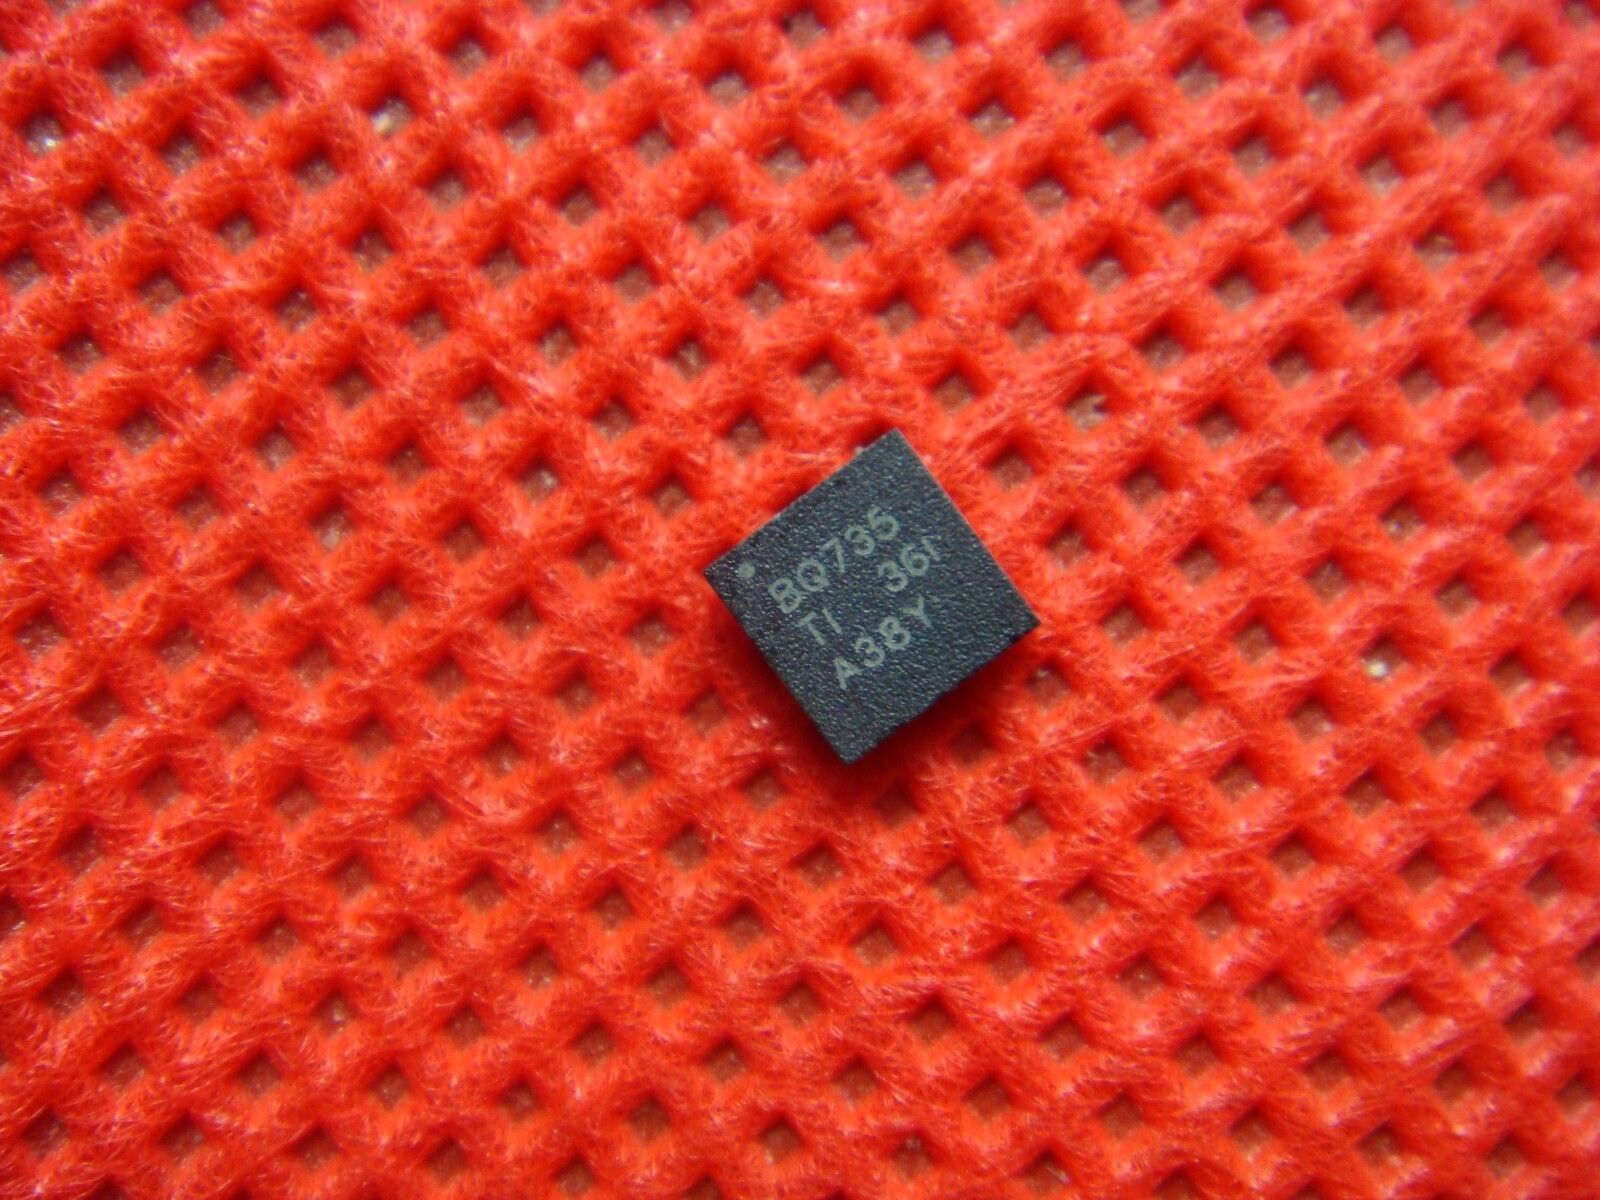 10 Pieces New Texas Instruments Ti Bq735 Qfn 20pin Power Ic Chip Electronic Components Integrated Circuitsicsicchina Mainland Chipset